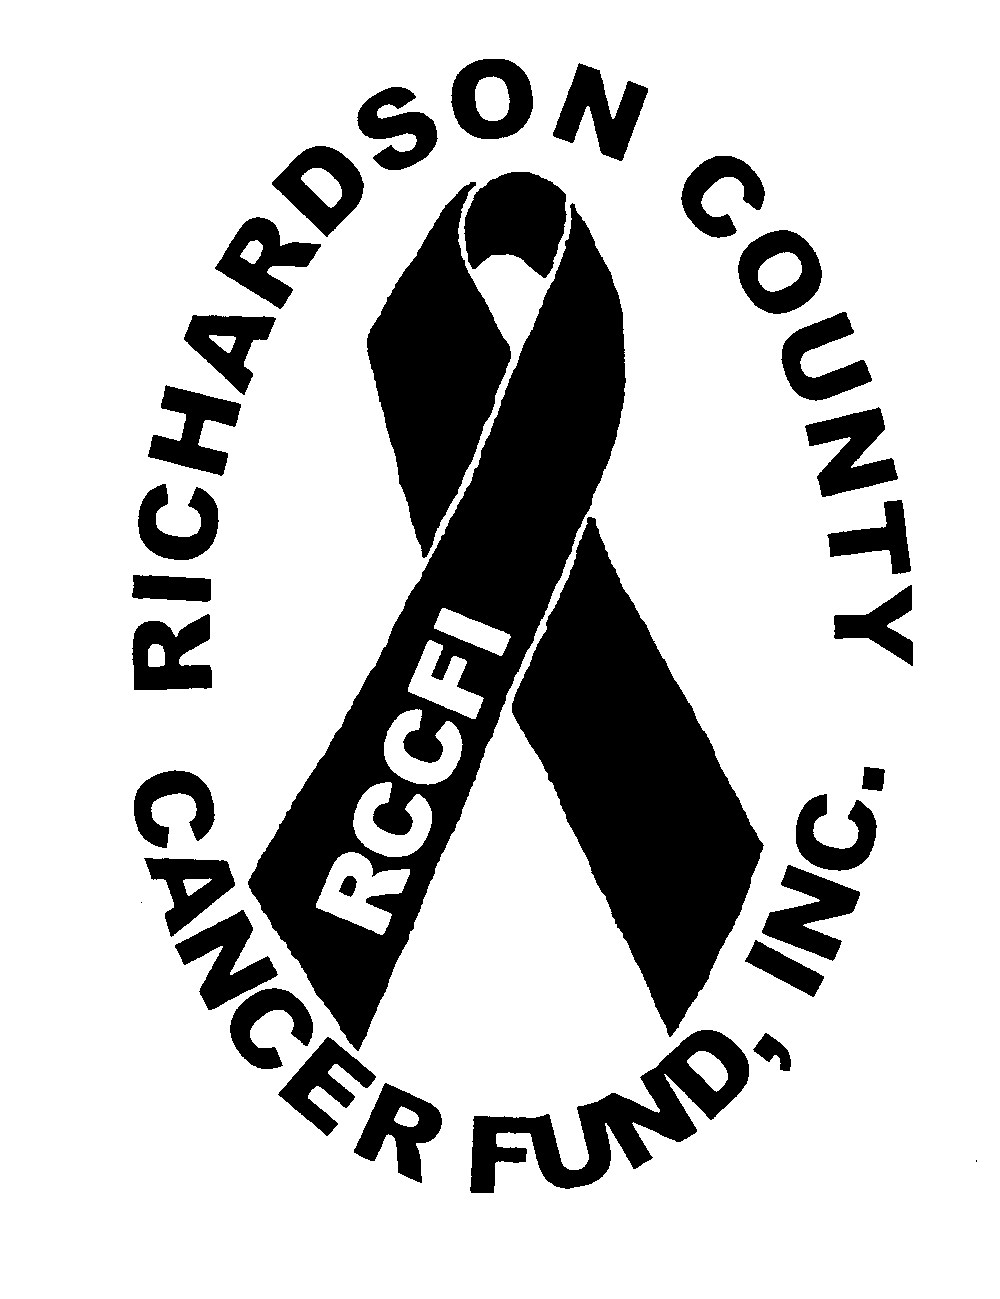 richardson county cancer fund - The Richardson County Cancer Fund, Inc., is a local organization serving the people of Richardson County. Our mission and purpose is to provide monetary assistance to Richardson County residents for transportation costs incurred during cancer treatments outside of Richardson County.